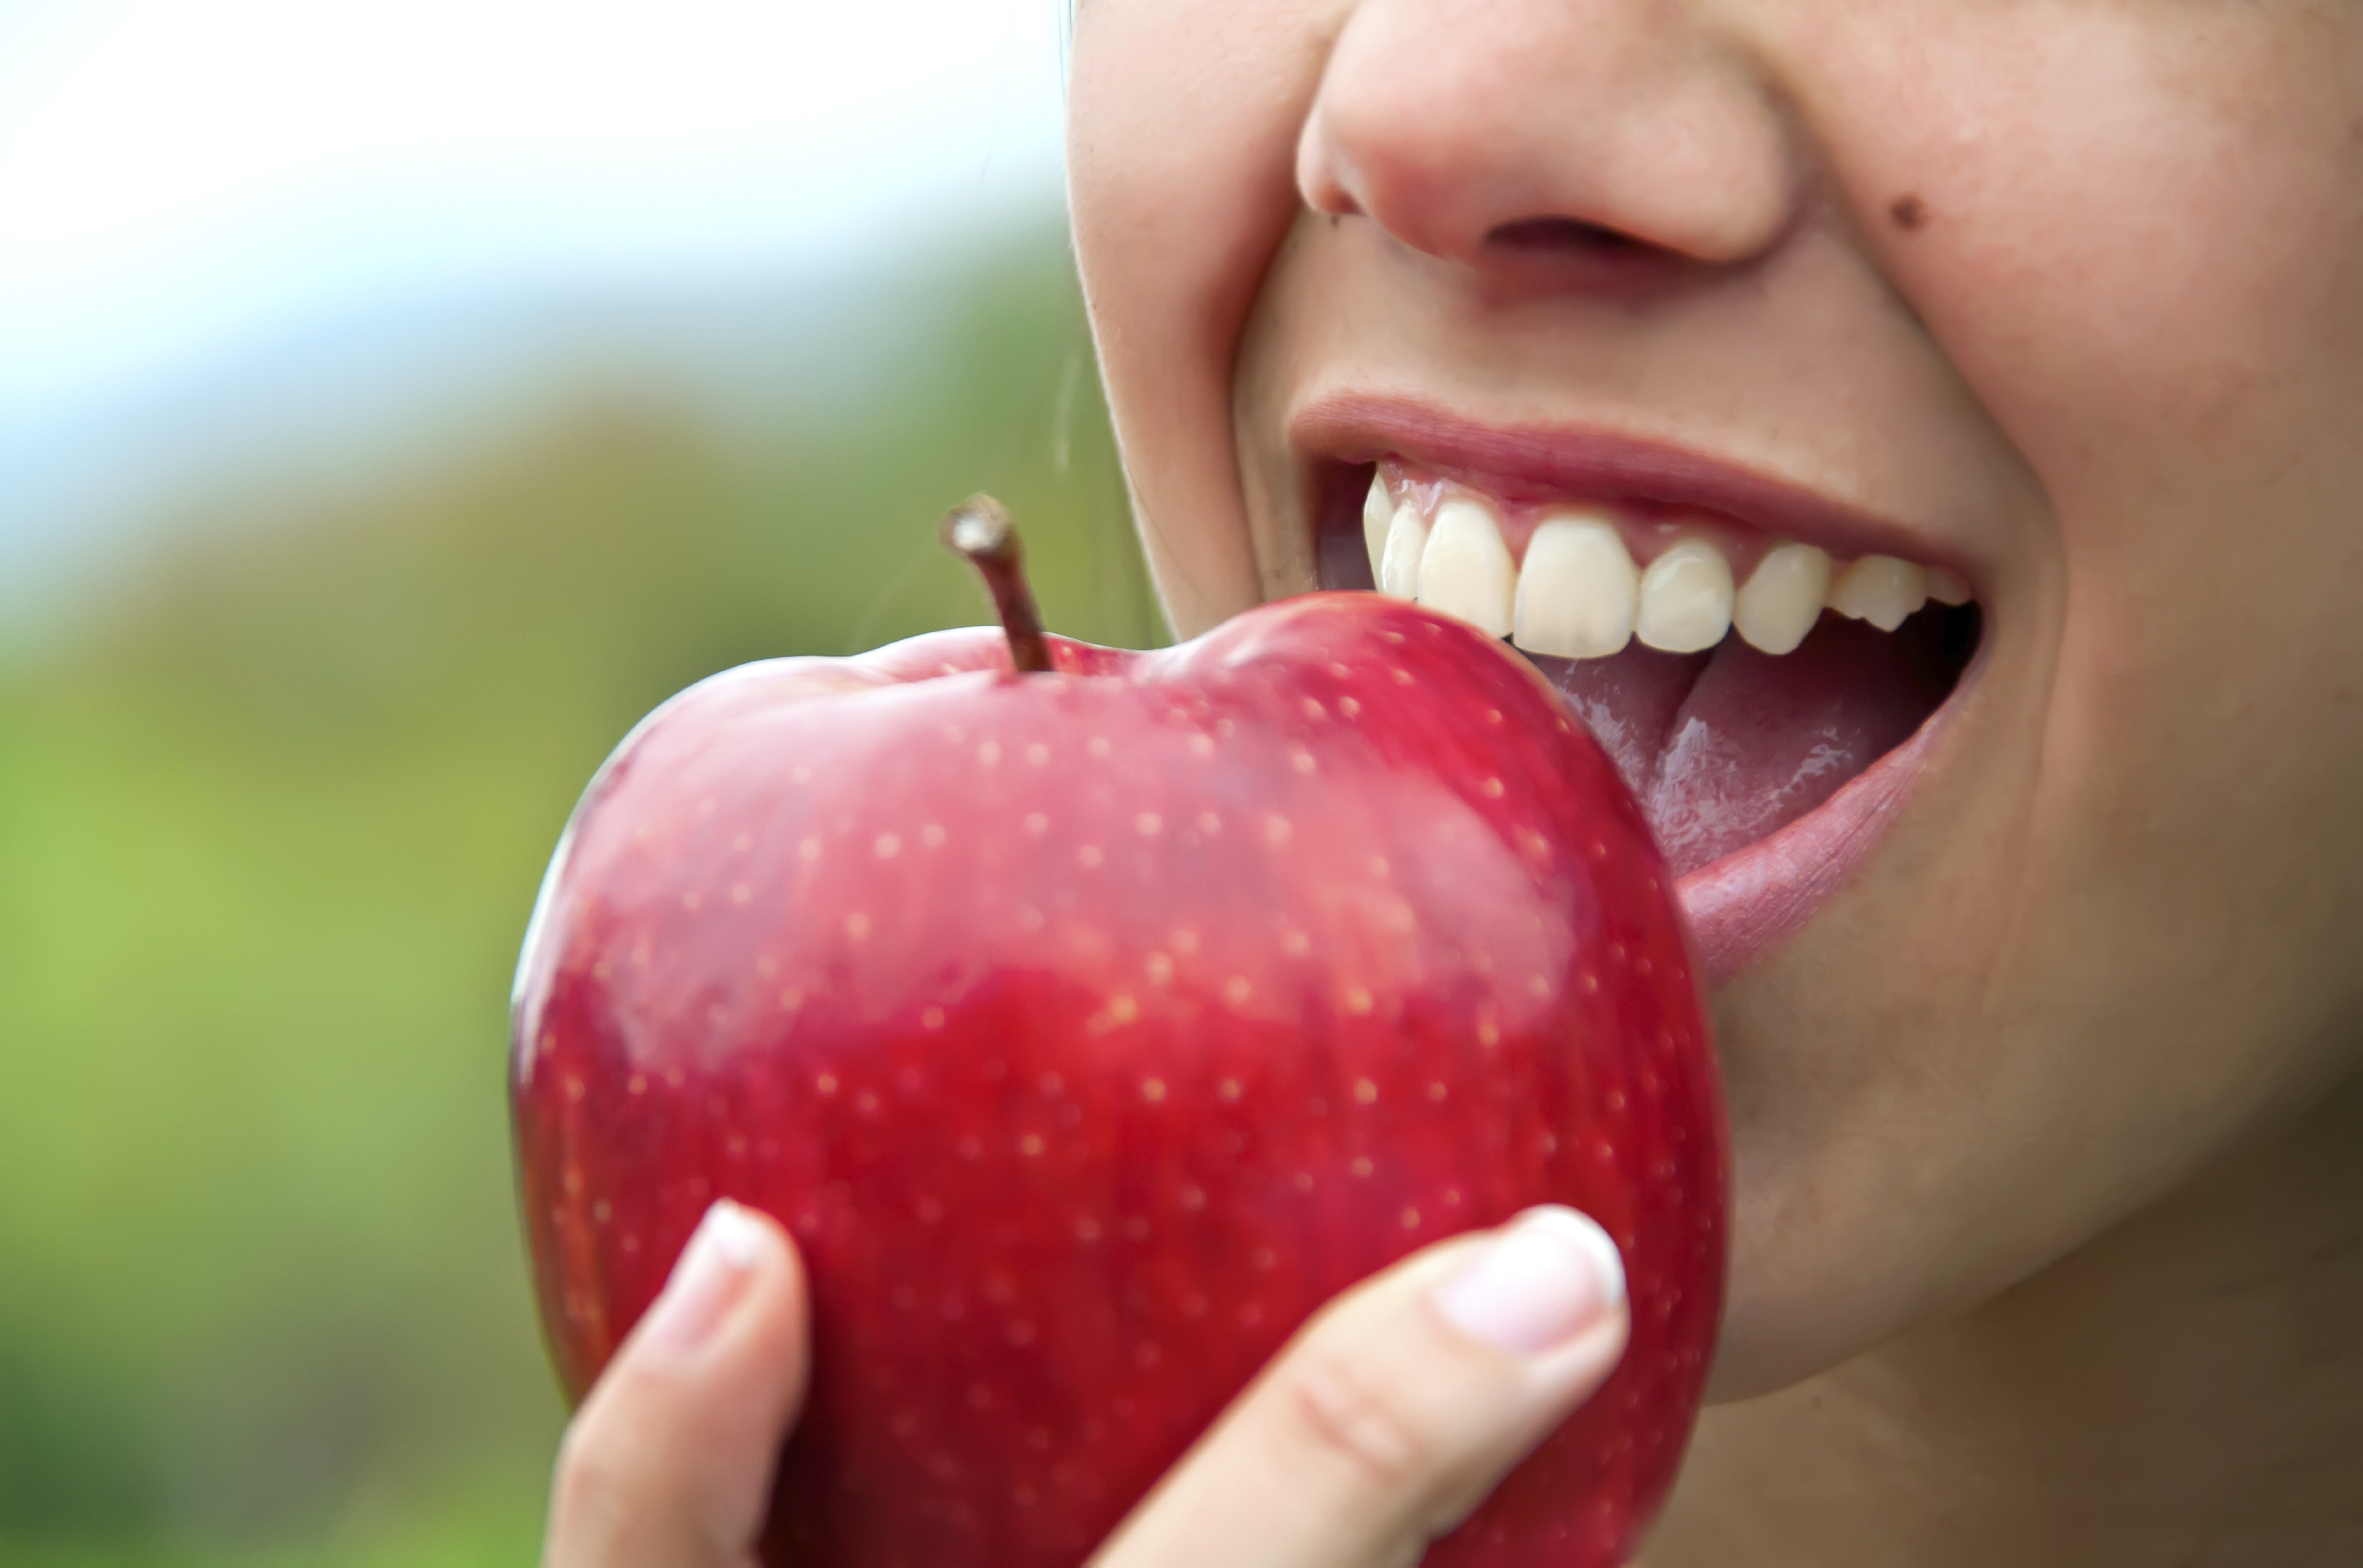 Does an apple a day really keep the doctor away? - CBS News